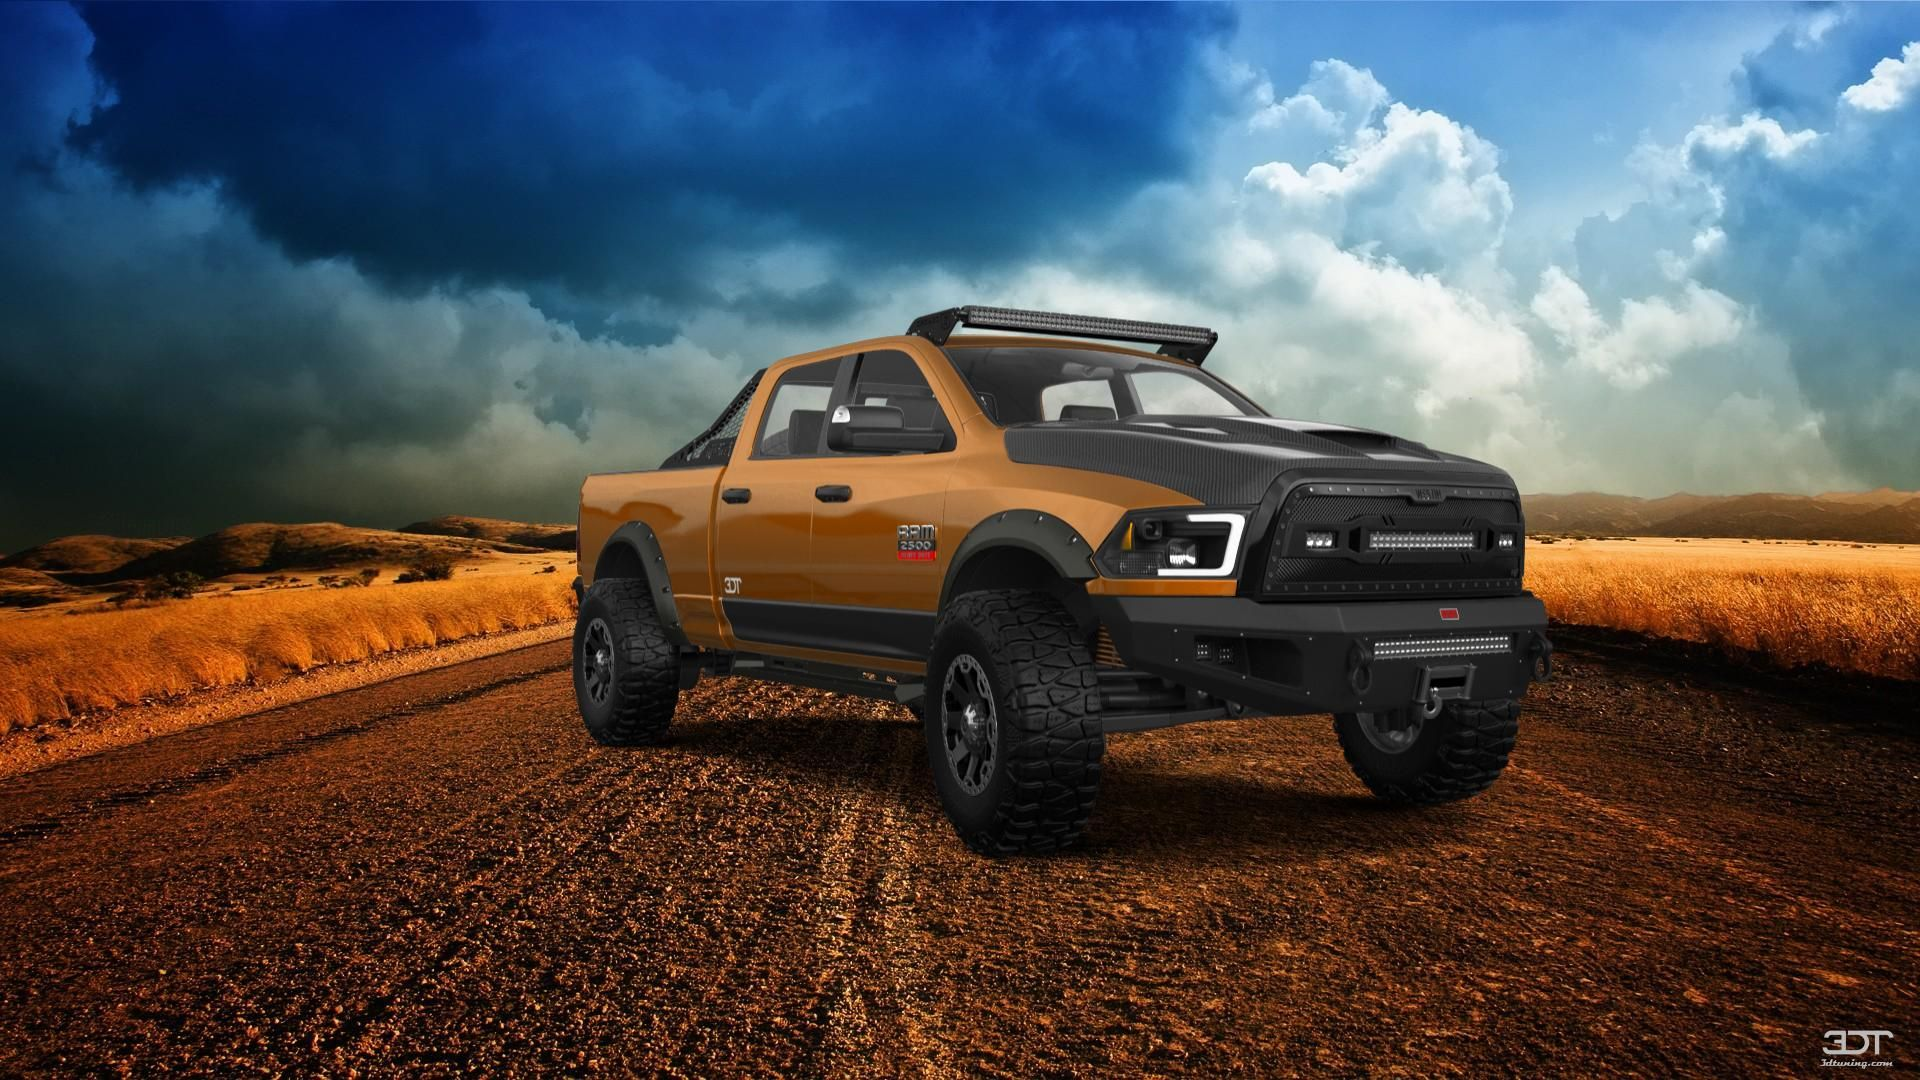 Checkout My Tuning Dodge Ram2500 2014 At 3dtuning 3dtuning Tuning Dodge Ram 2500 Monster Trucks